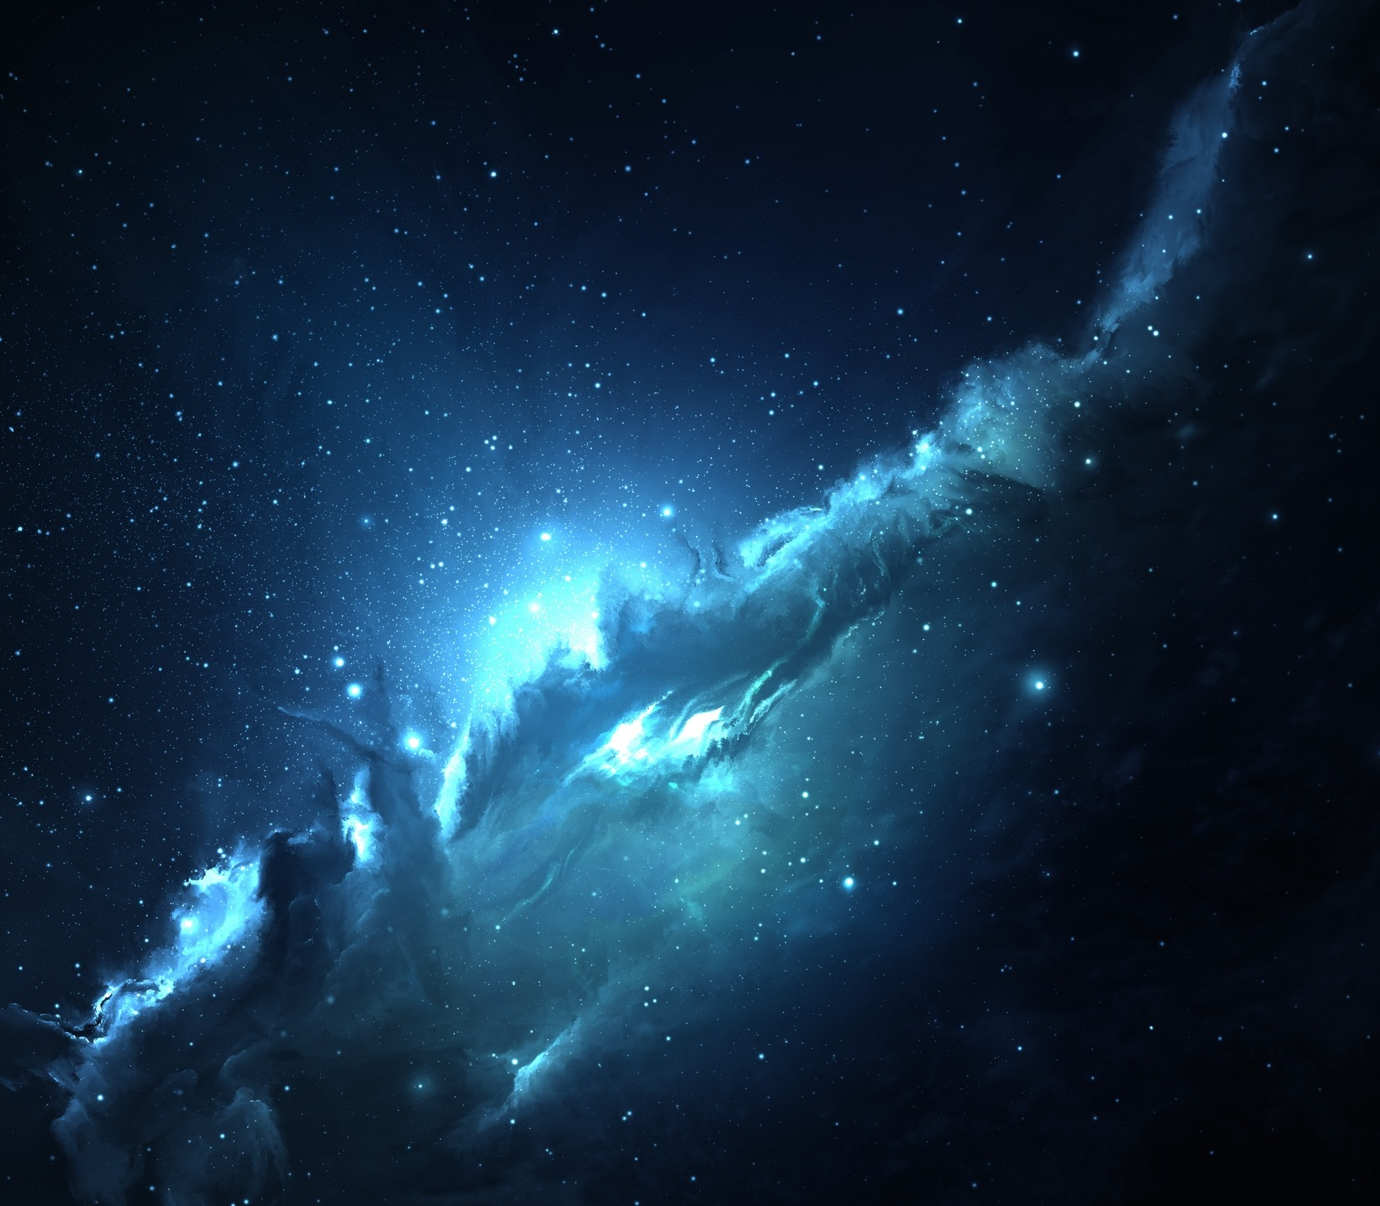 Atlantis Nebula Wallpaper